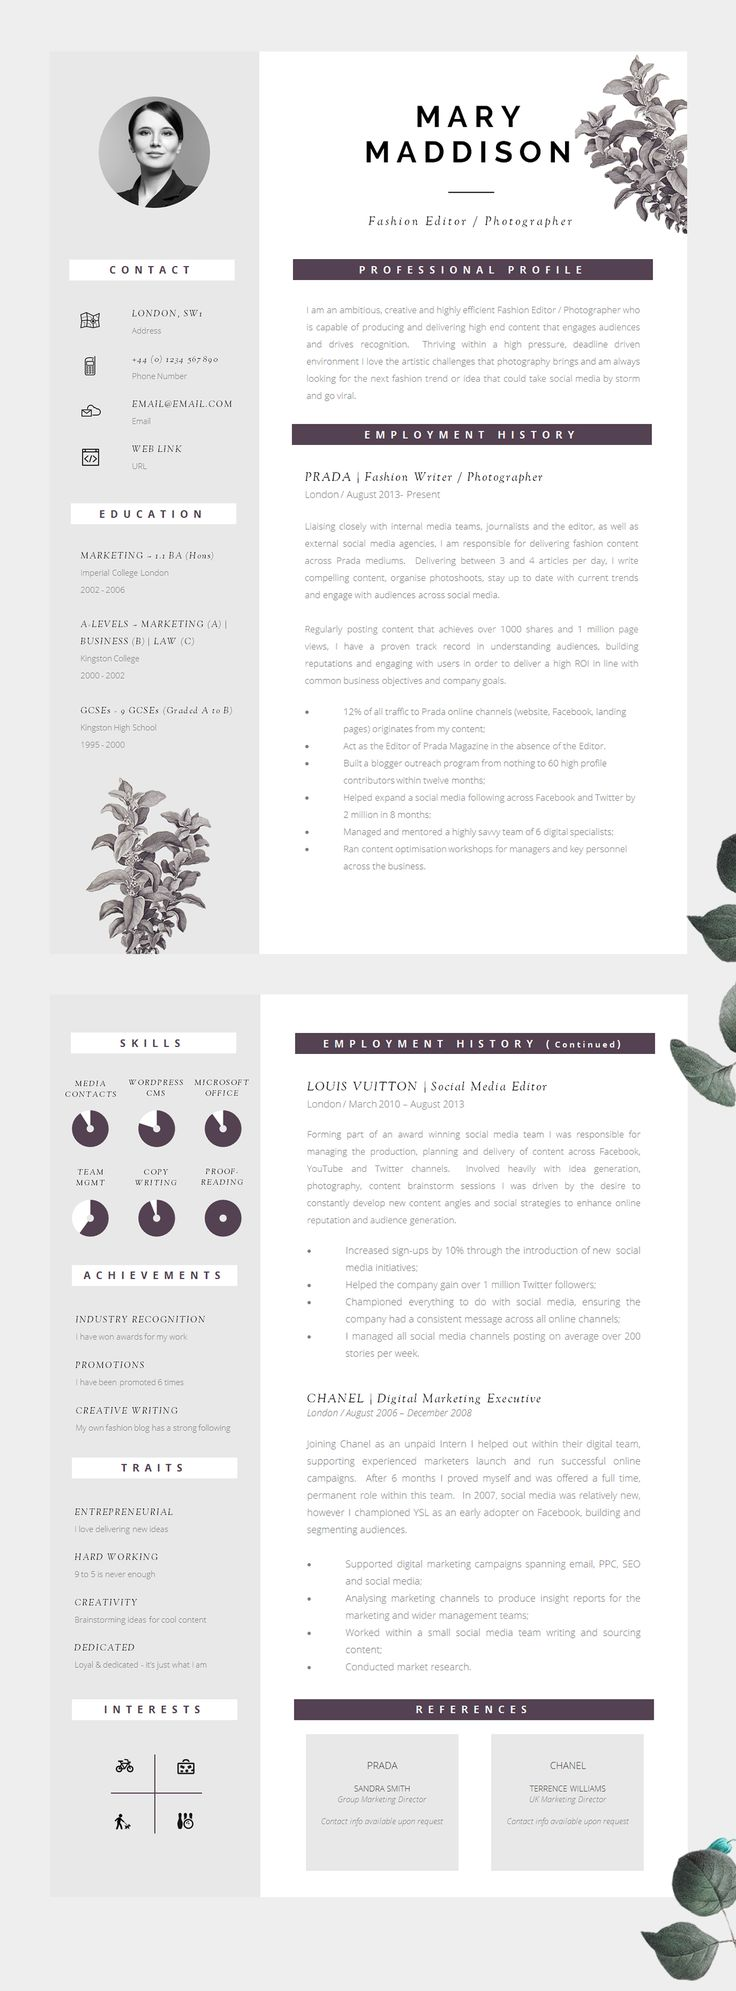 Well Designed CV, Modern Yet Professional   Information Is Clear To Read  And Well Structured  Best Graphic Design Resumes